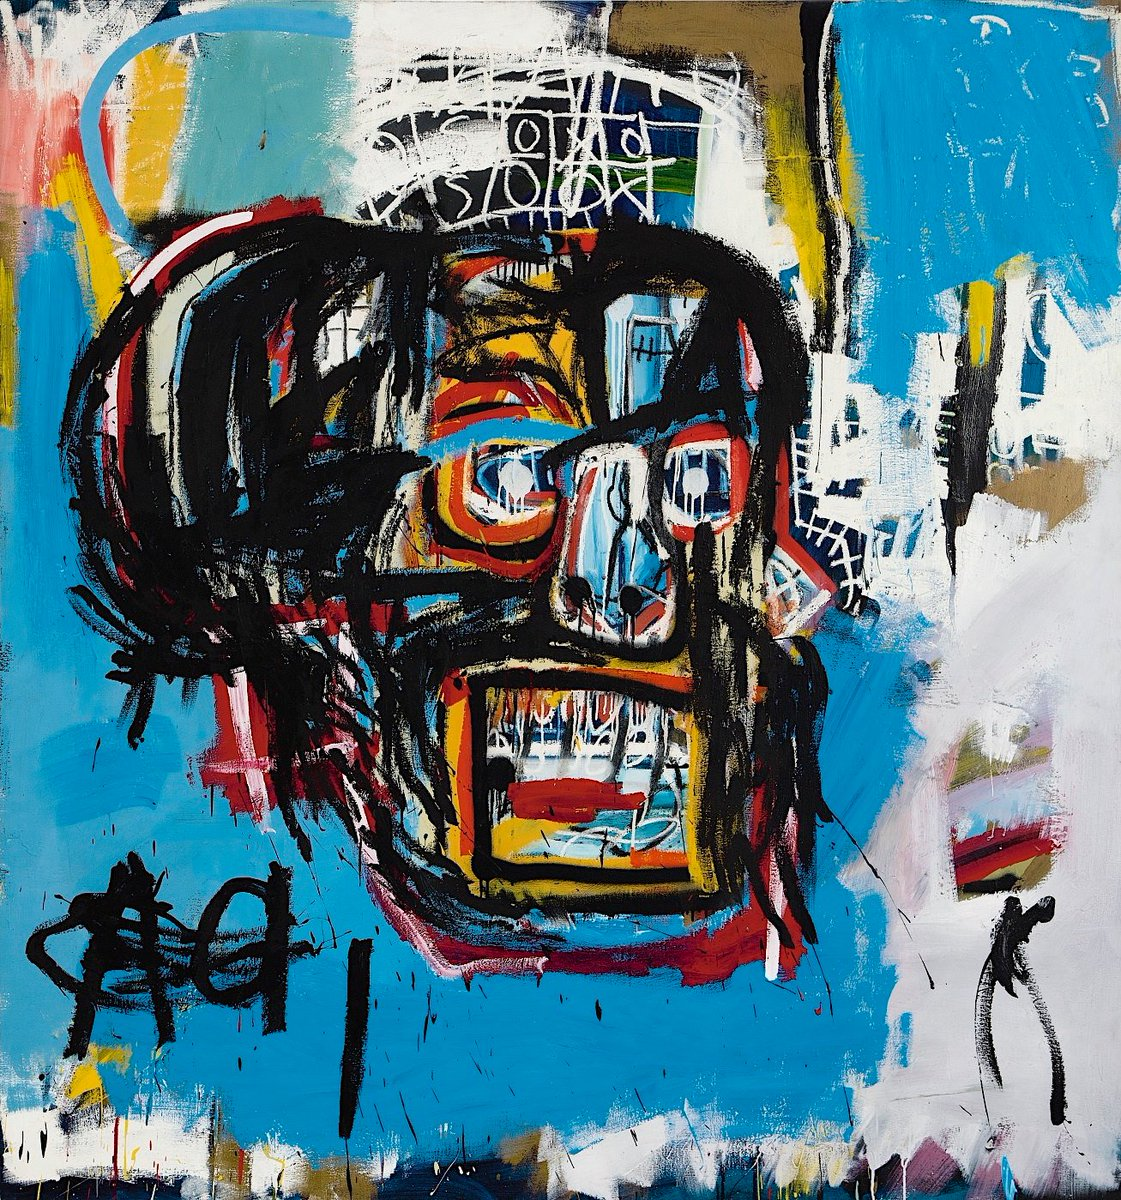 Jean-Michel Basquiat - Untitled - 1984. Just Sold for $110,487,500